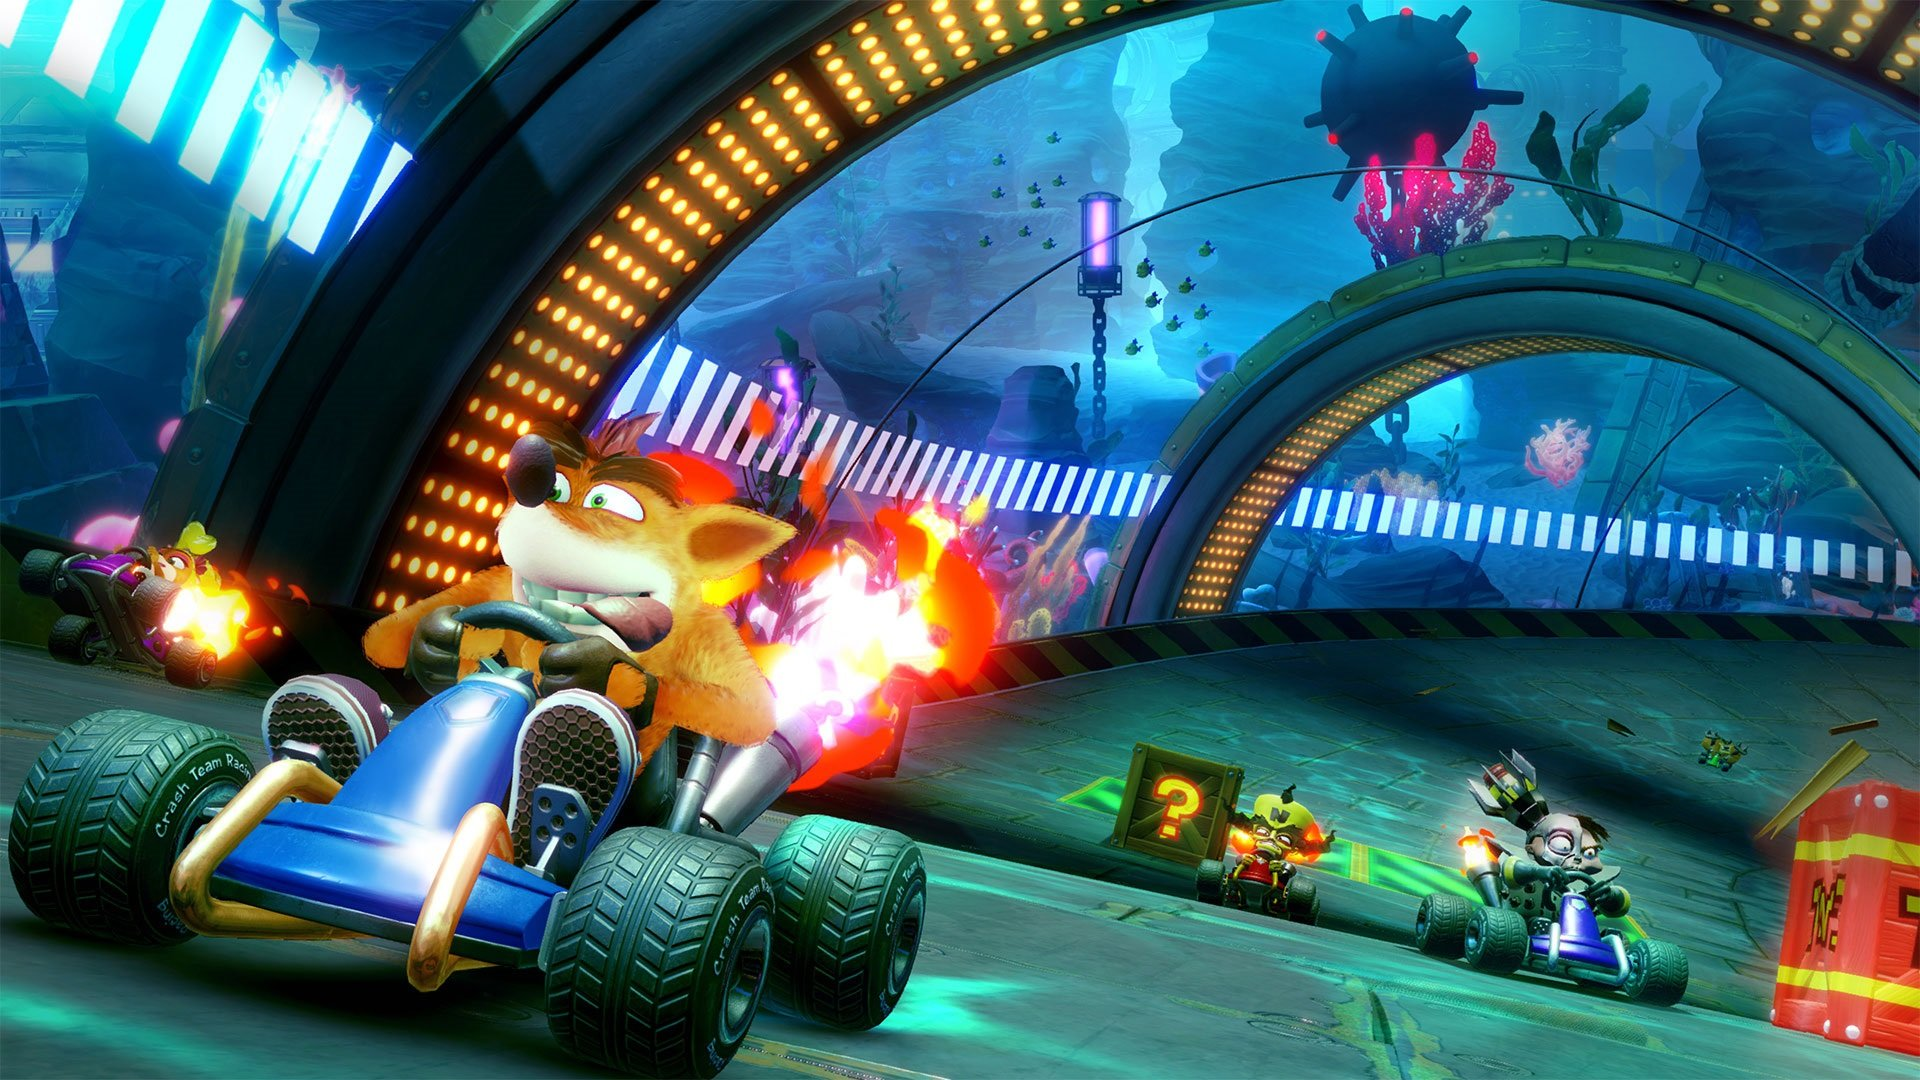 Play through Adventure Mode and defeat characters like Papu Papu to unlock them in Crash Team Racing Nitro-Fueled.